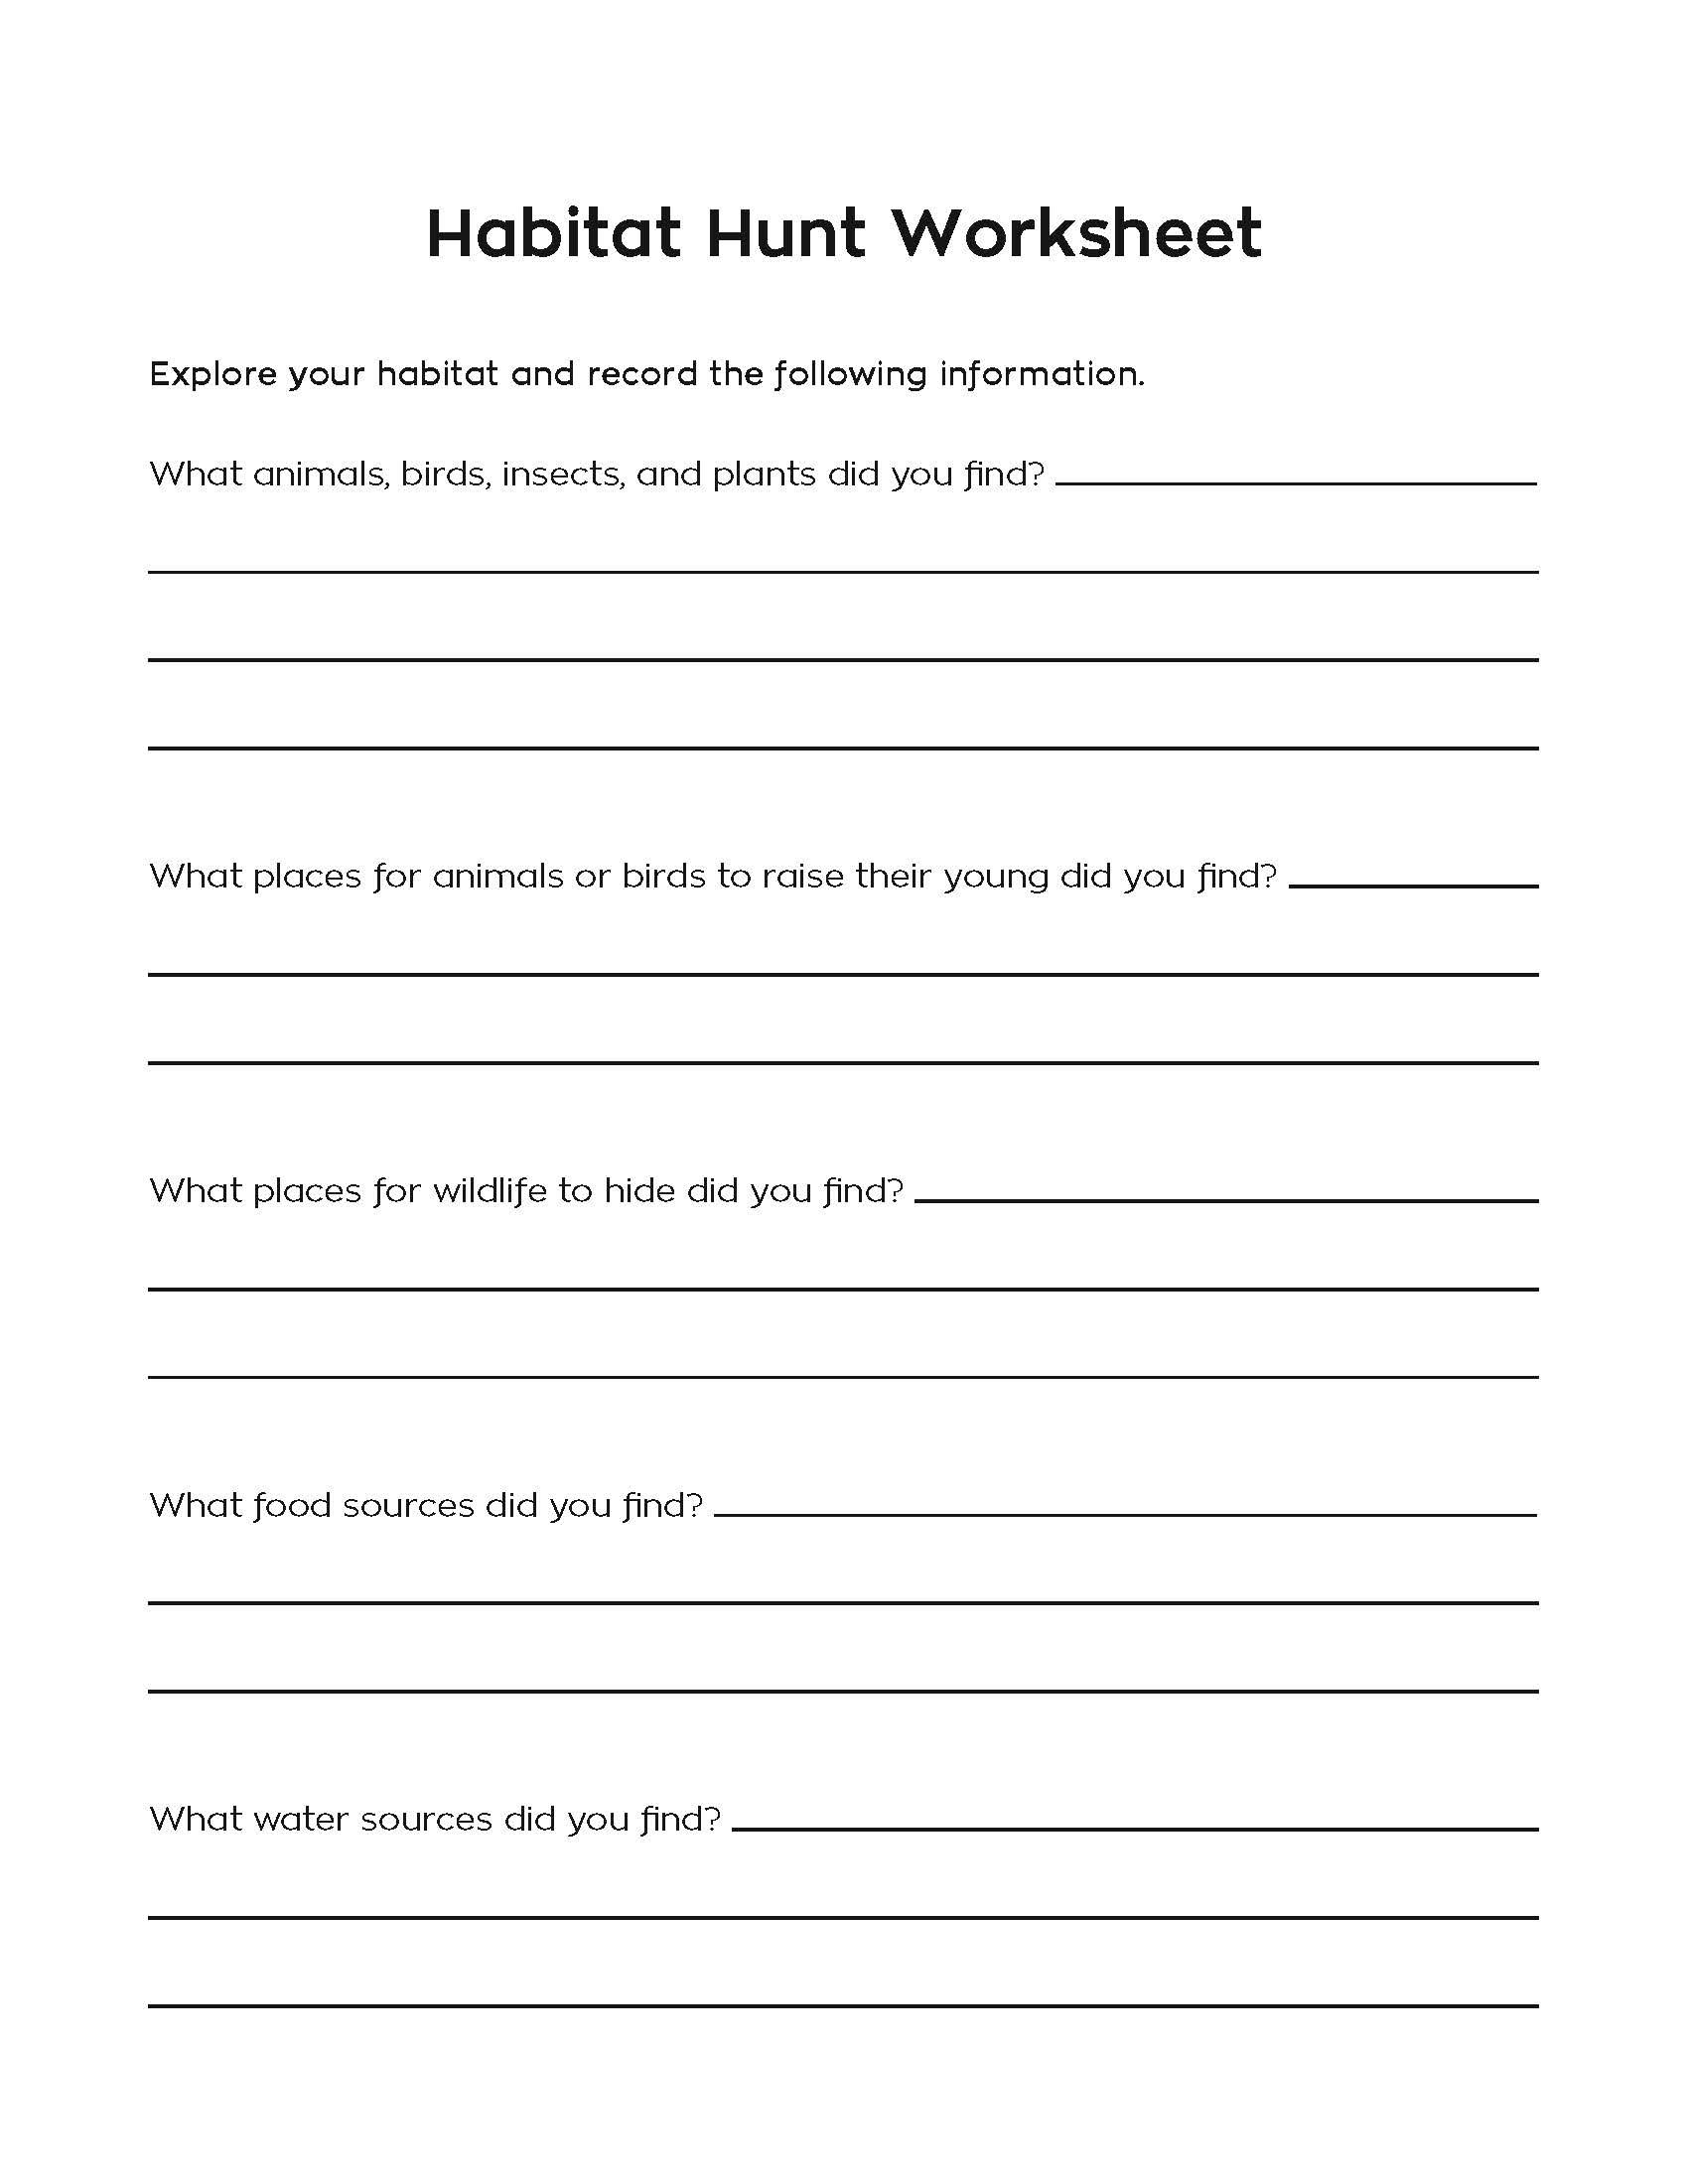 Meeting 12 Use This Worksheet For Your Habitat Hunt Word Family Worksheets 2nd Grade Reading Worksheets Word Work Centers [ 2200 x 1700 Pixel ]